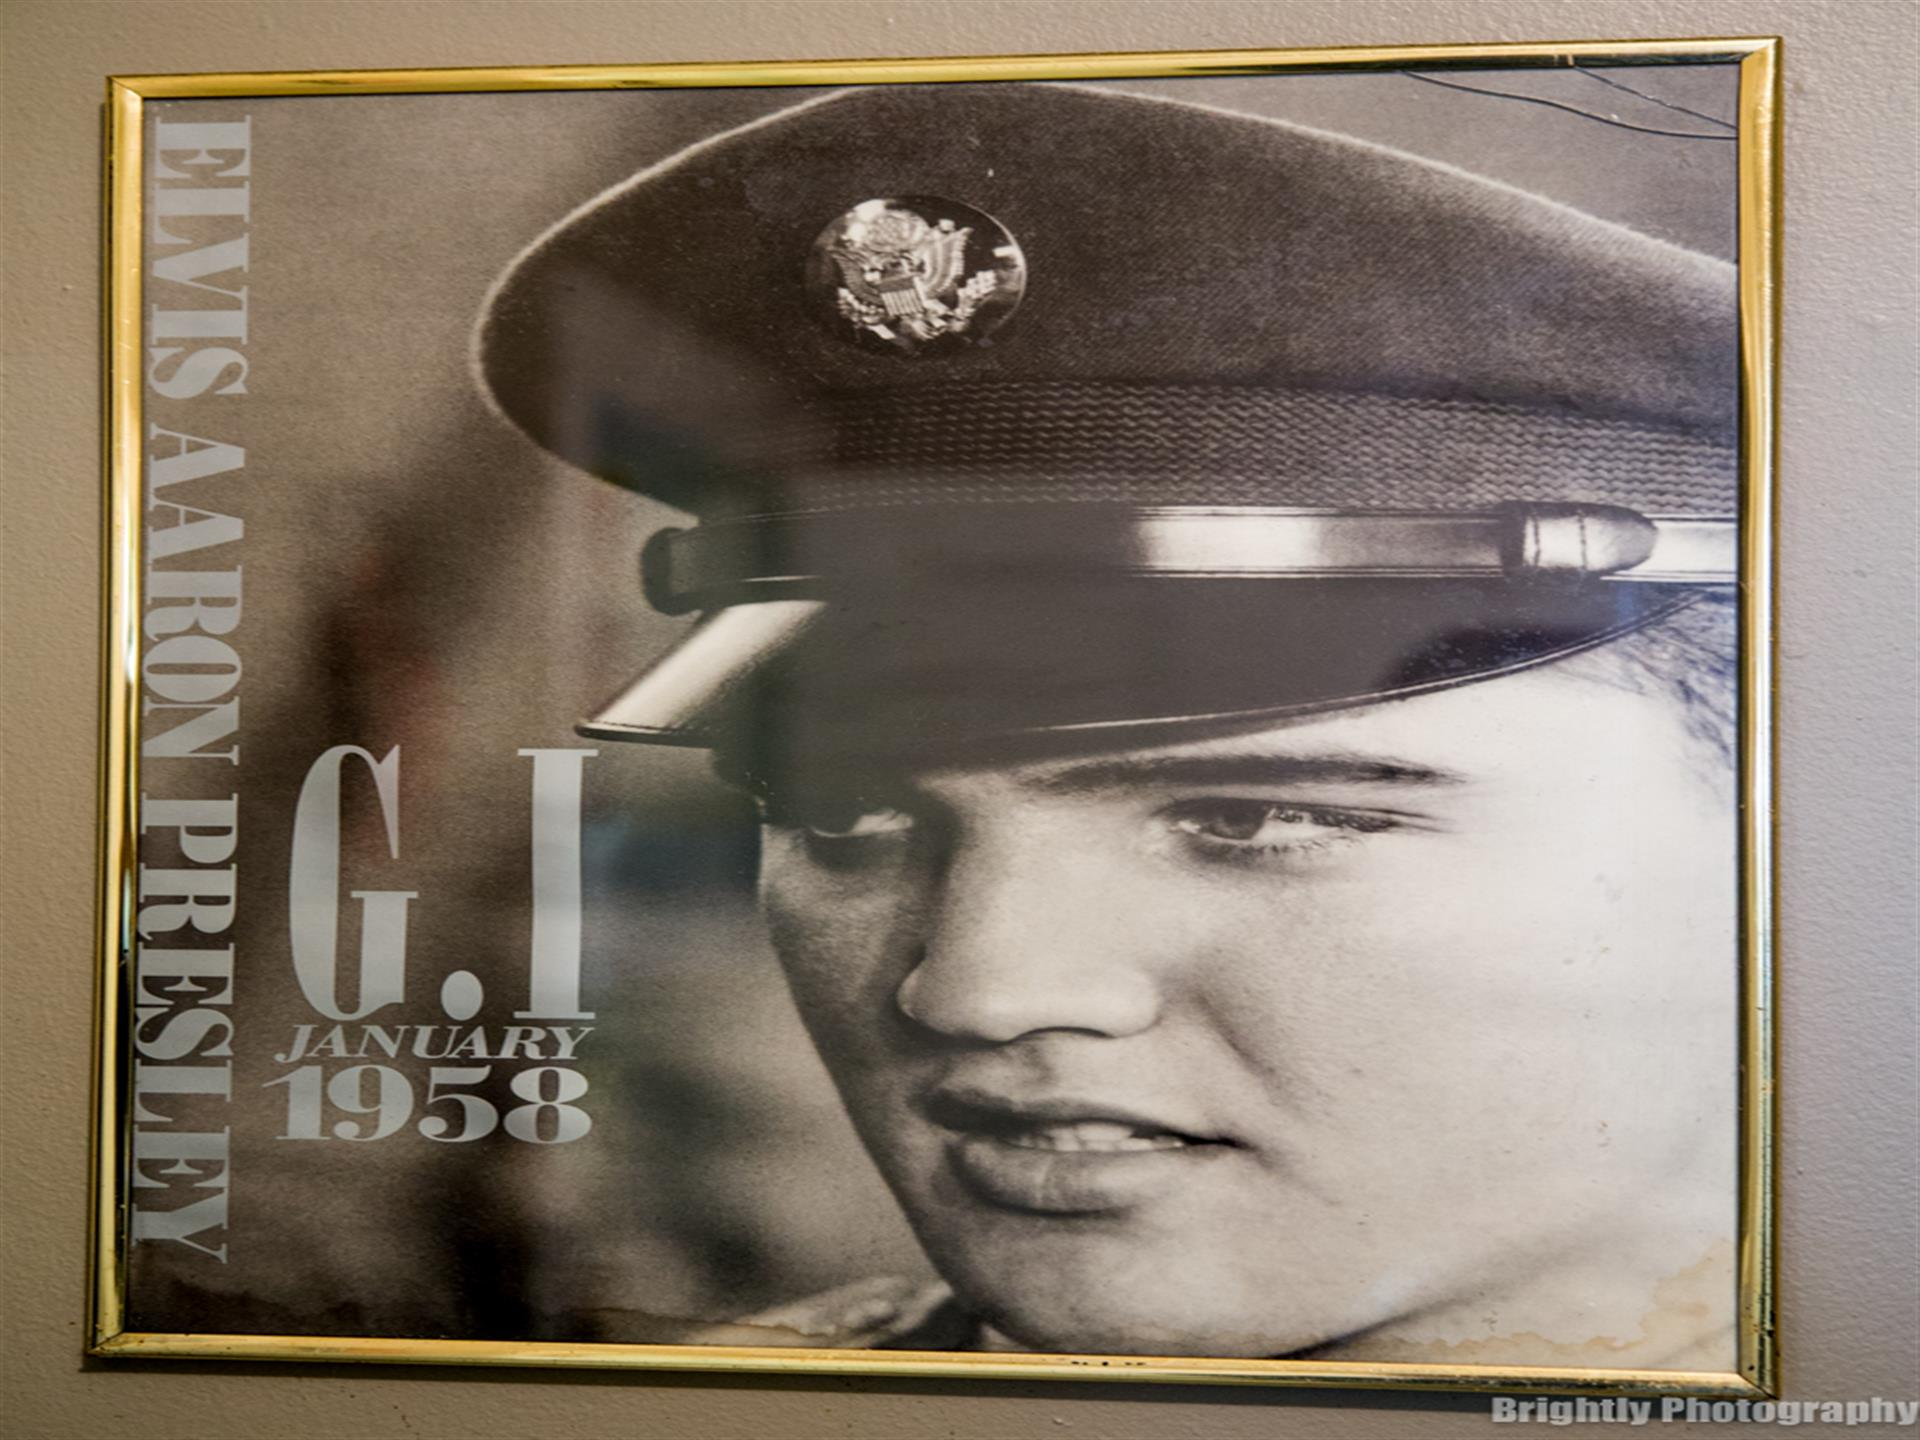 Elvis Aaron Presley. G.I. January 1958 poster showing elvis wearing military hat